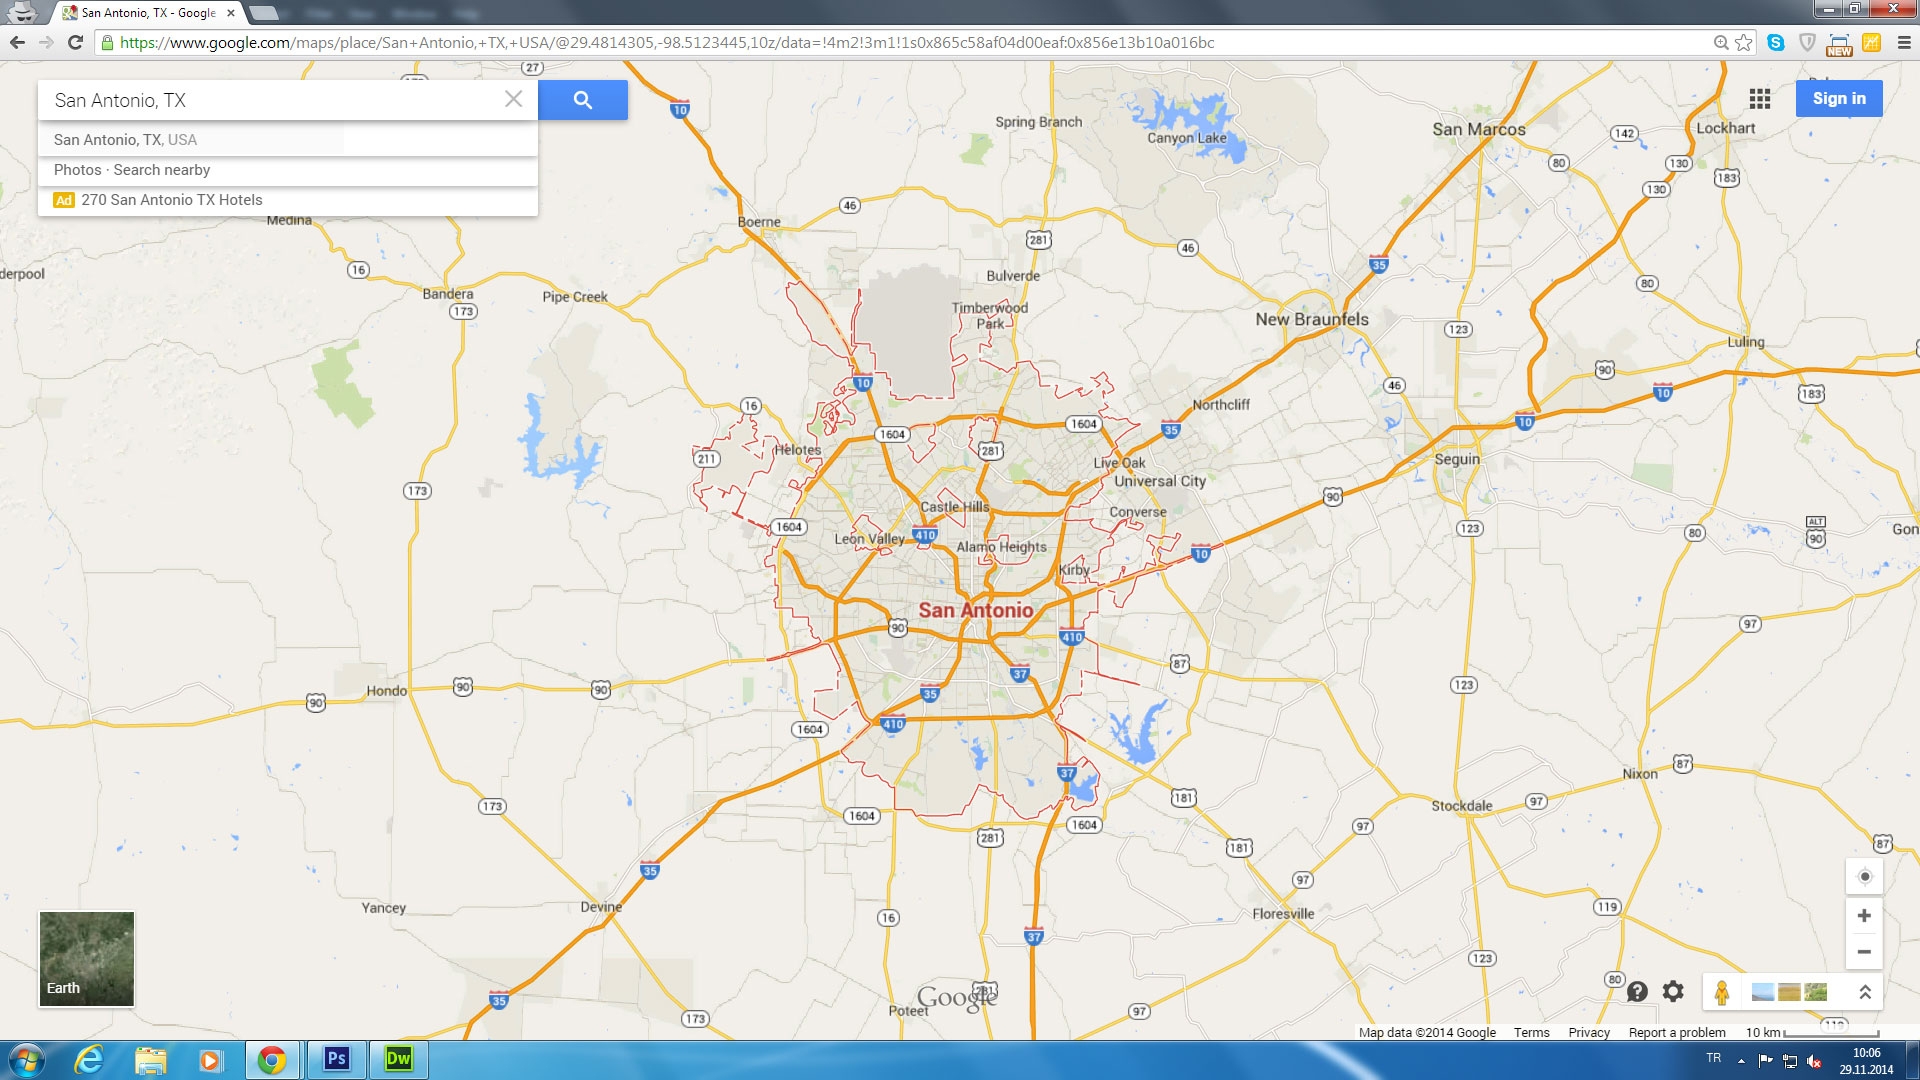 San Antonio Texas Map - Google Maps San Antonio Texas